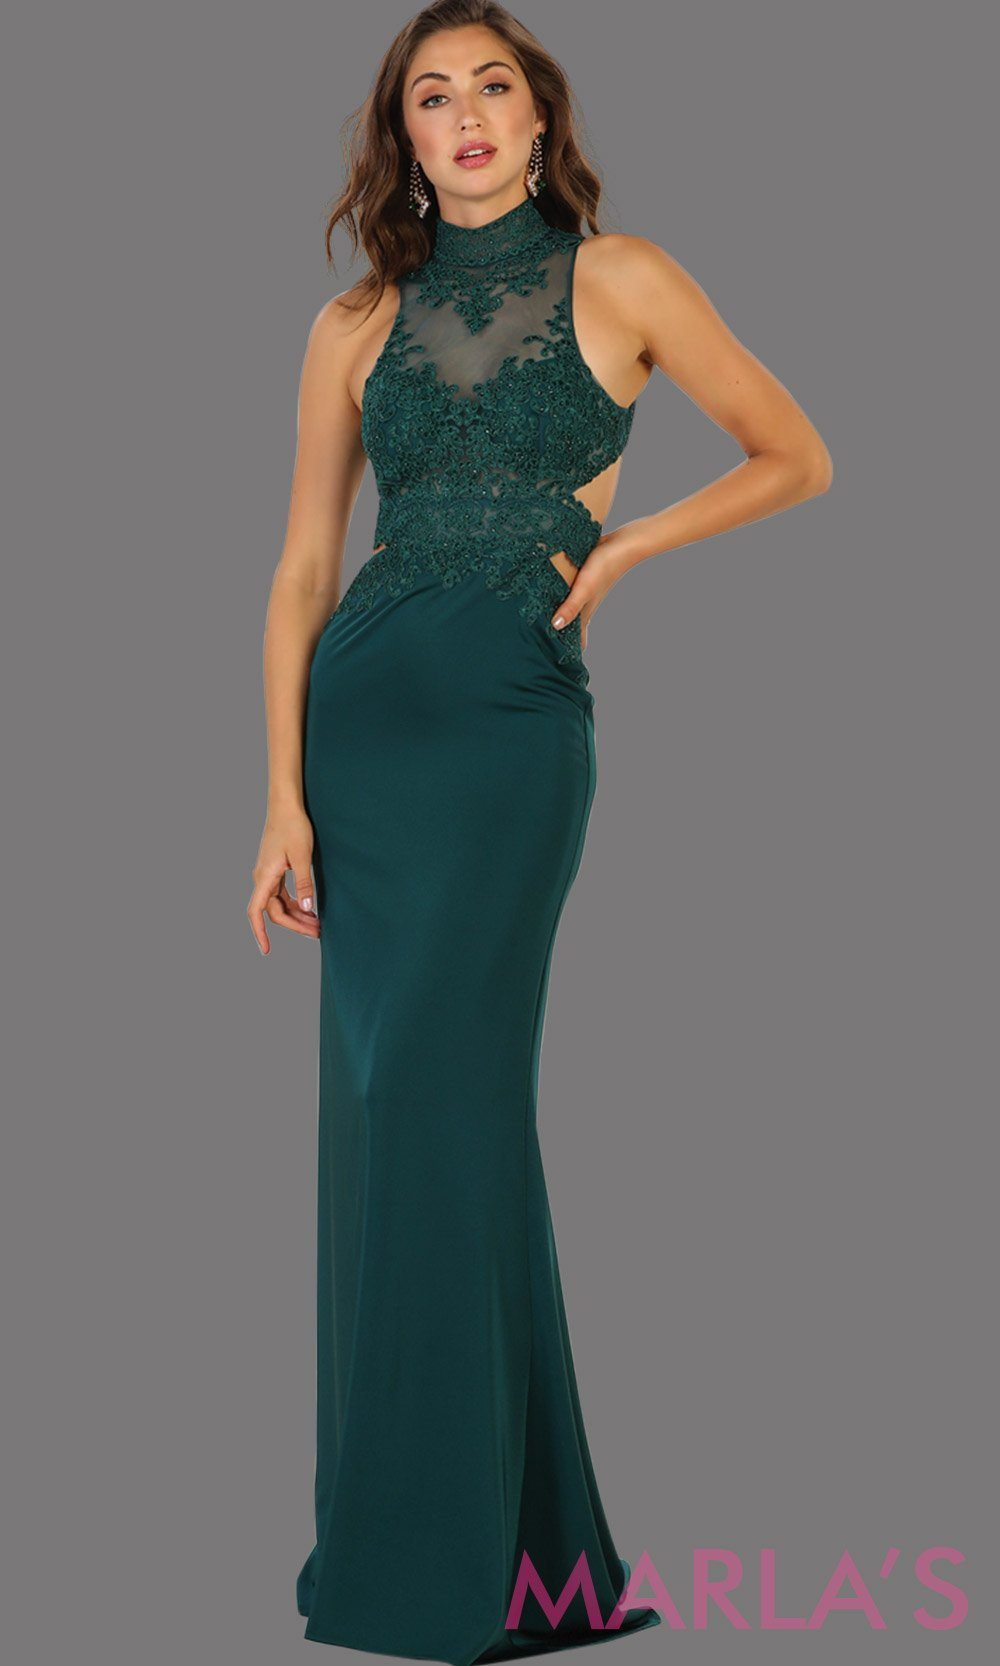 Long hunter green open back fitted dress. Low back dark green gown is perfect for prom, formal gala, formal wedding, reception, engagement dress. Features high neck with illusion waist, neckline, low back.